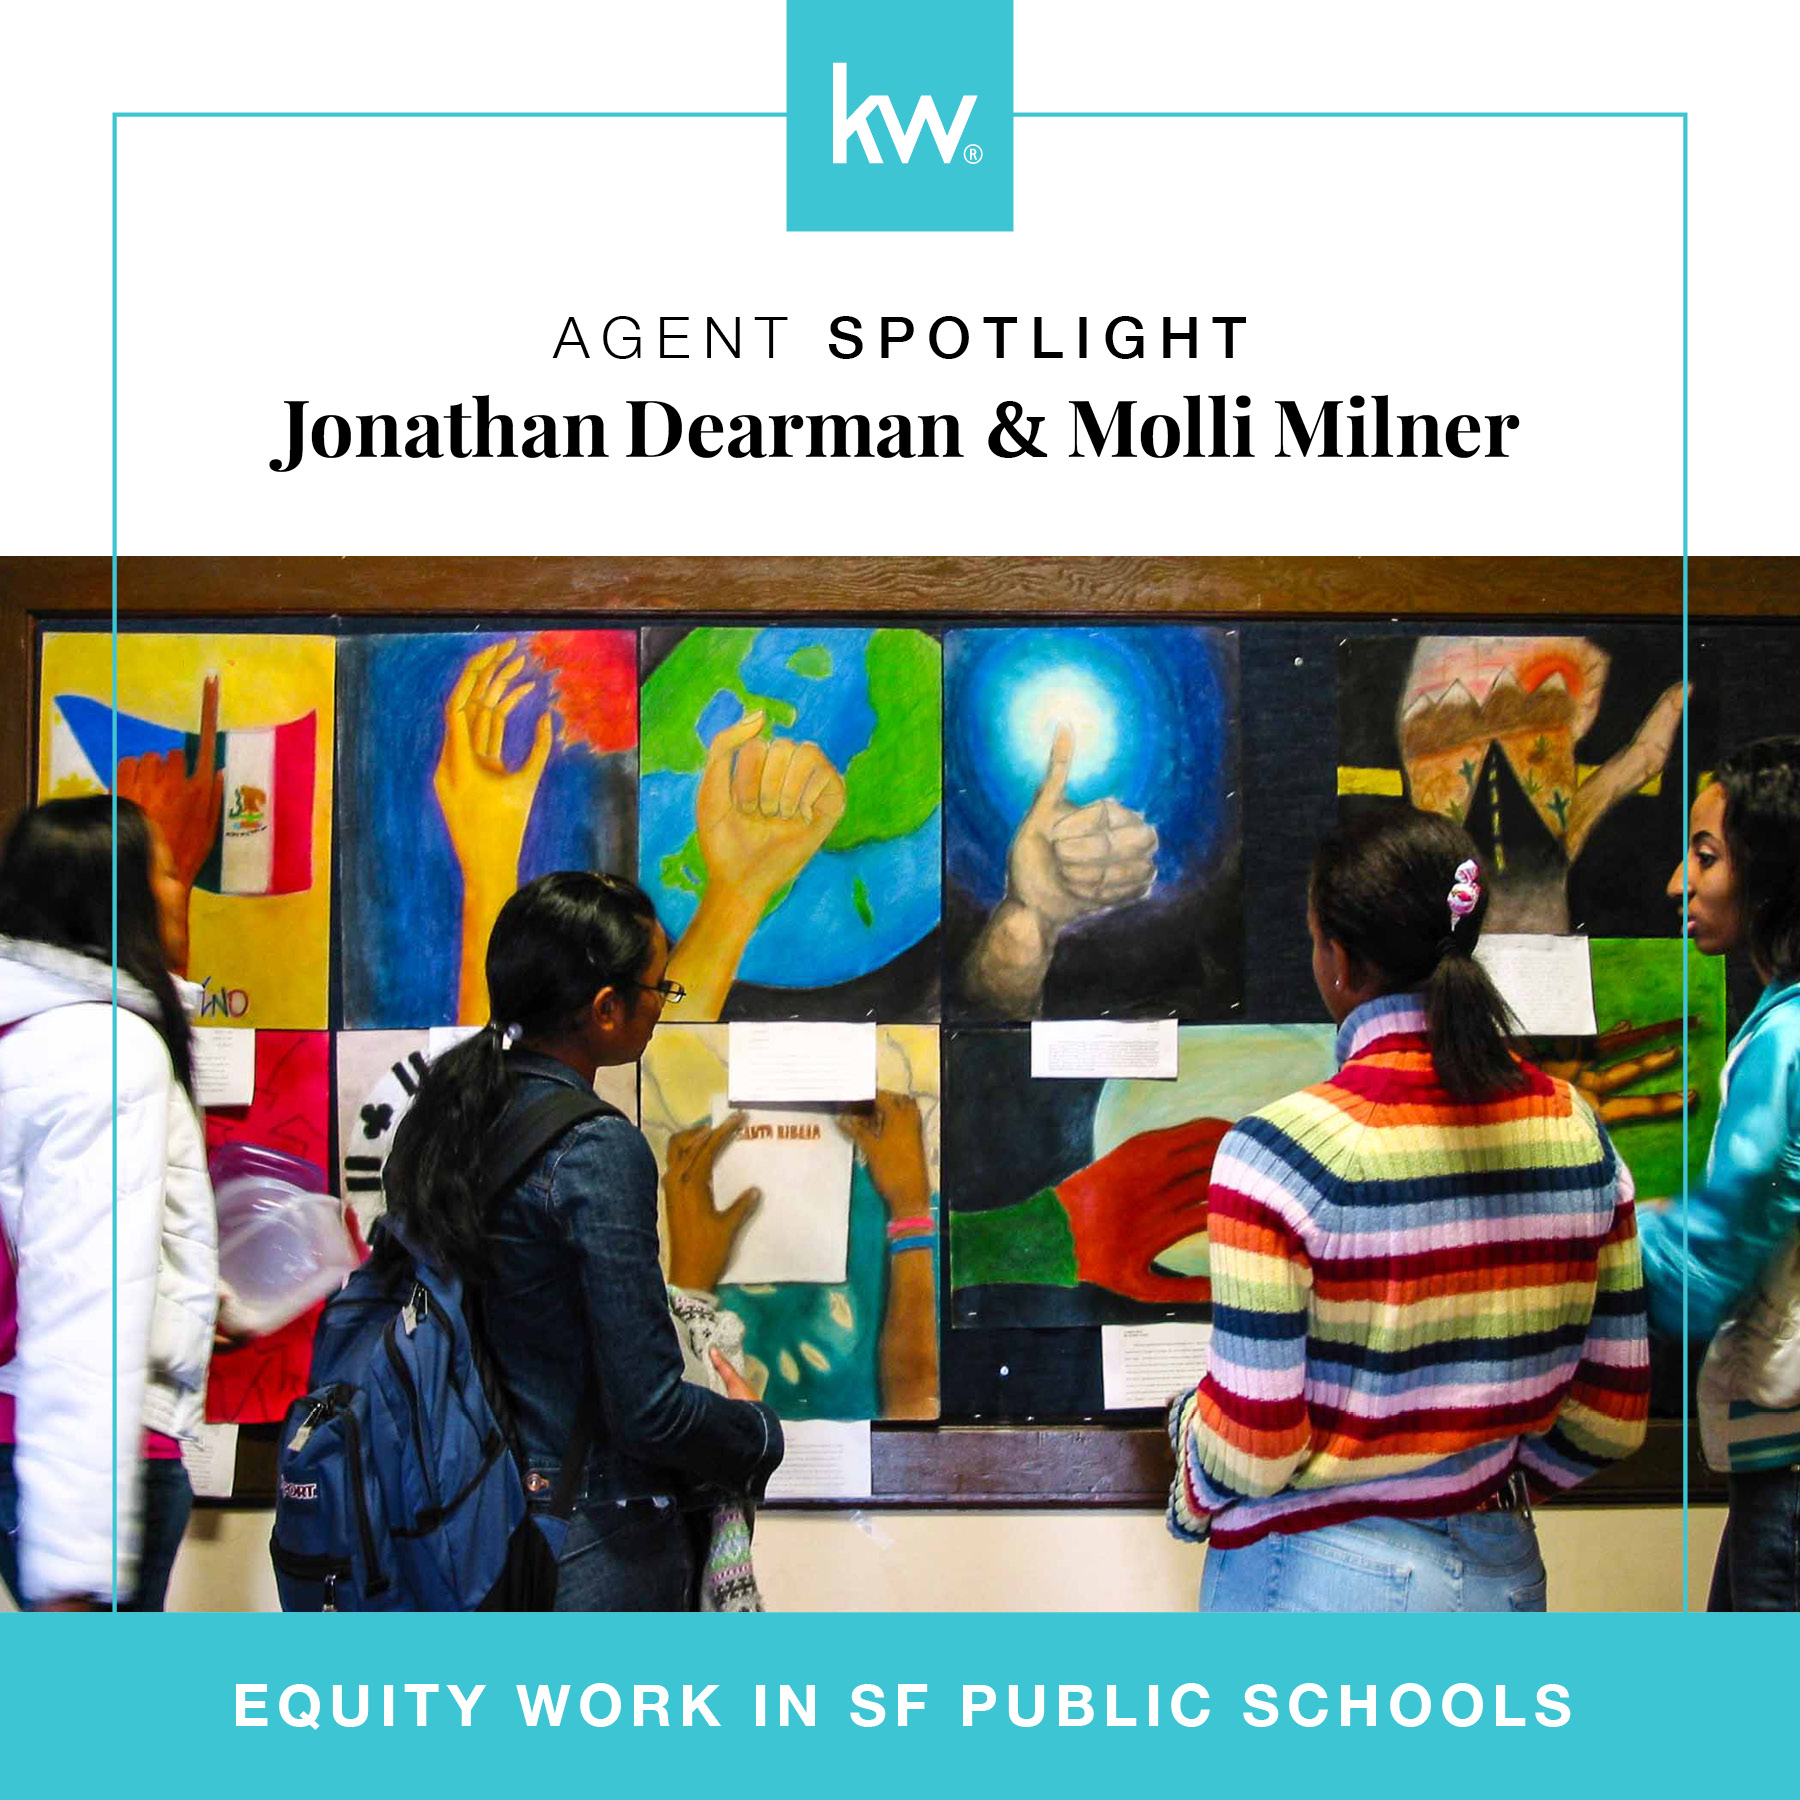 "Keeping Kids in the Classroom: Equity Work in SF Public Schools - Keller Williams is one of the largest real estate franchises in the country. The San Francisco office wanted to highlight the philanthropic work agents are doing in their communities. We strategized and created monthly ""Spotlight Interviews"" to tell those stories. Agents are nominated, by their peers, for a Q&A style piece that's featured on the Keller Williams SF blog."